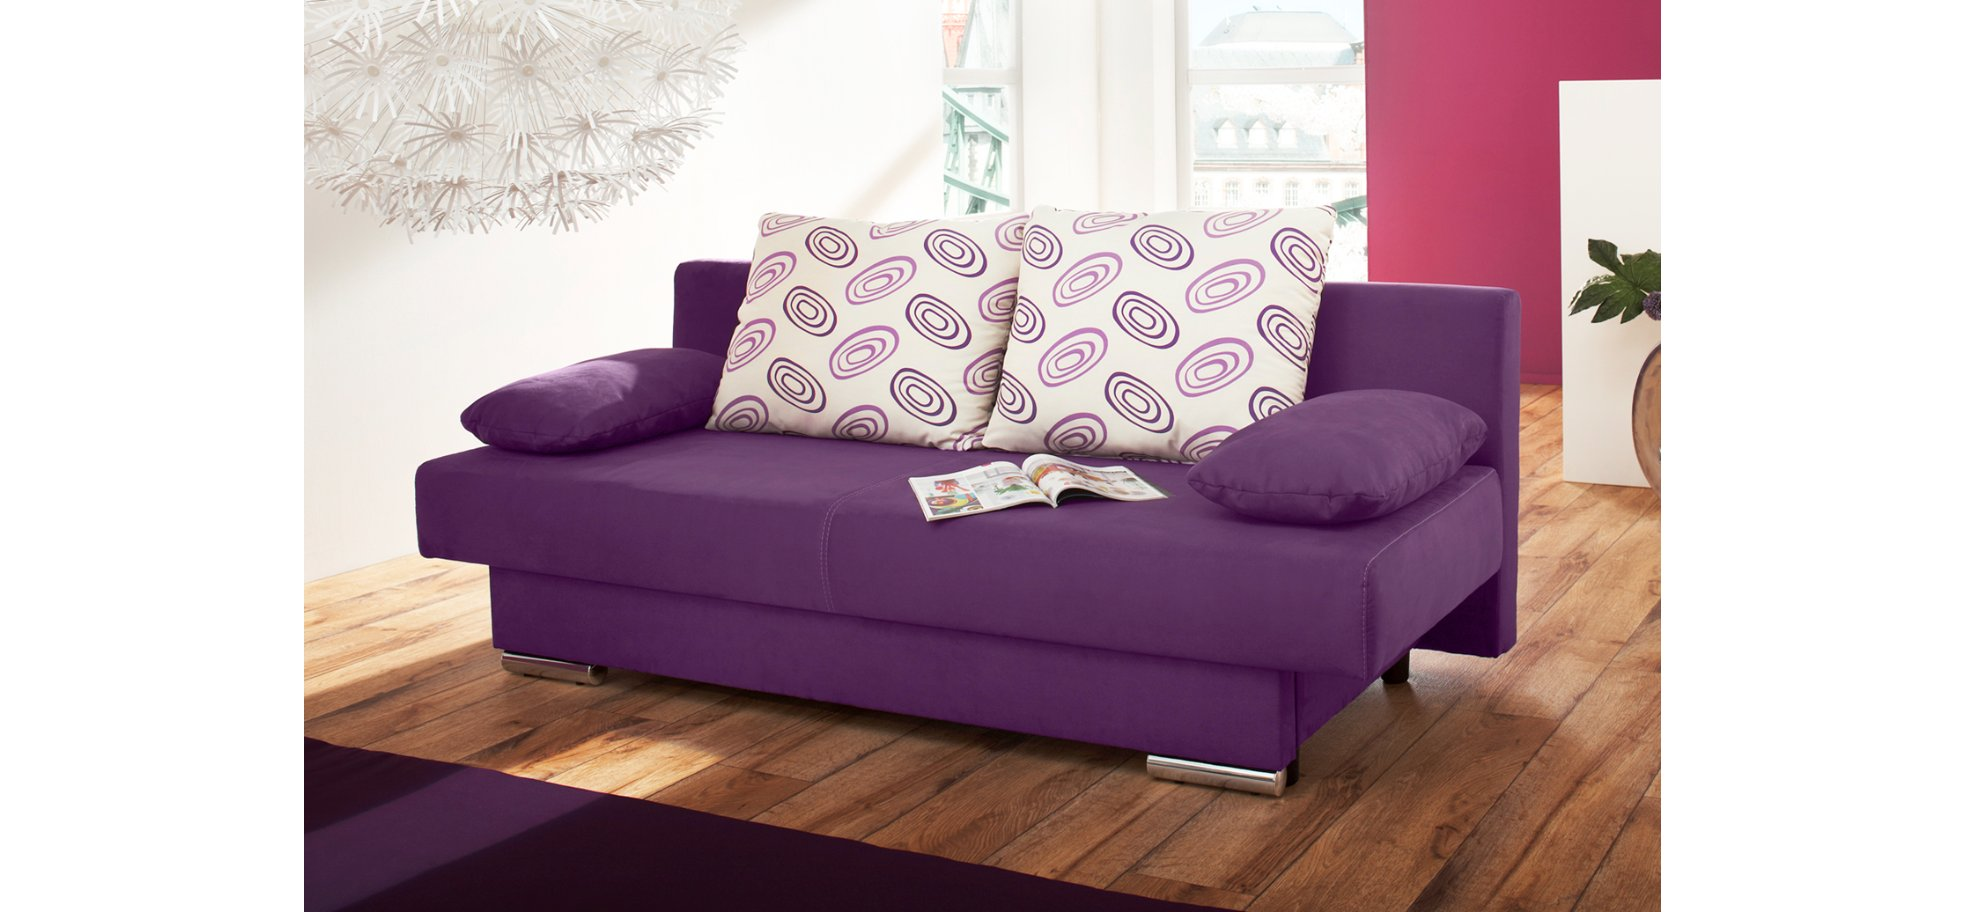 Full Size of Sofa Lila Samt Chesterfield Bed Lilac 3 Piece Suite Set Lilah Covers Cushions Queen Sleeper Chair Raymour And Flanigan Uk Corner Throws Emerald Craft Federkern Sofa Sofa Lila